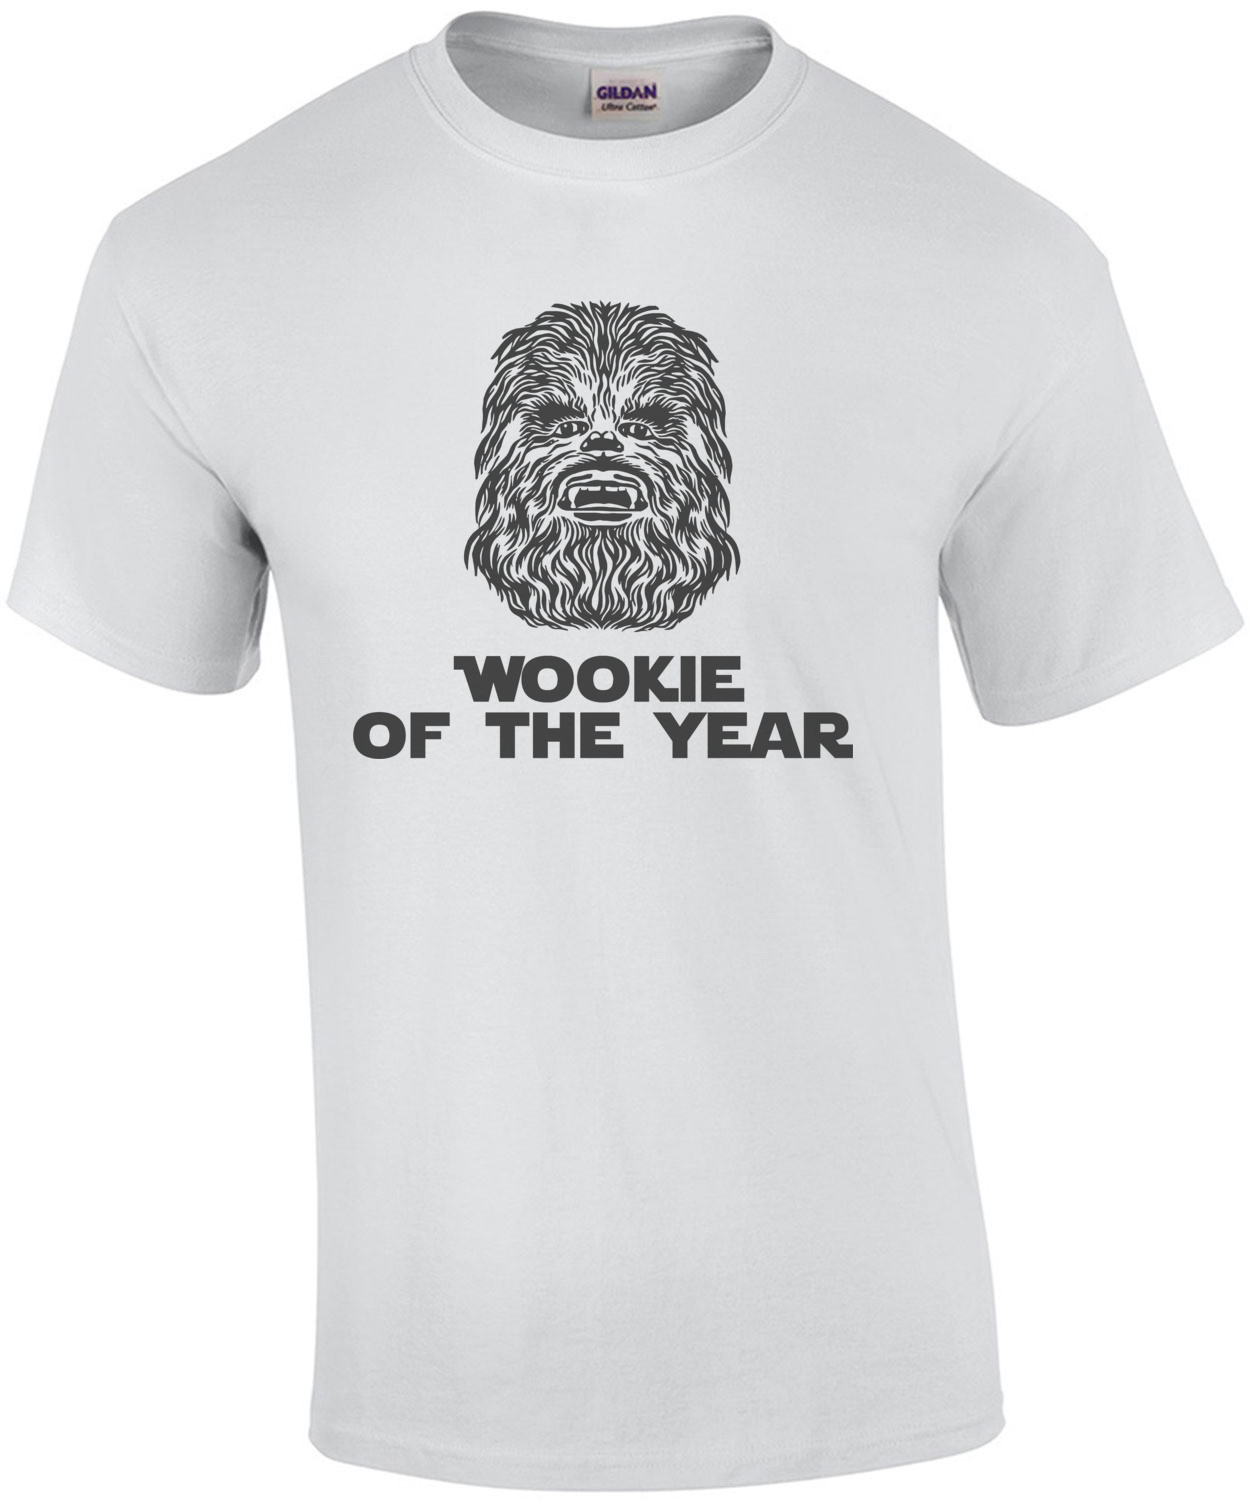 Wookie Of The Year shirt